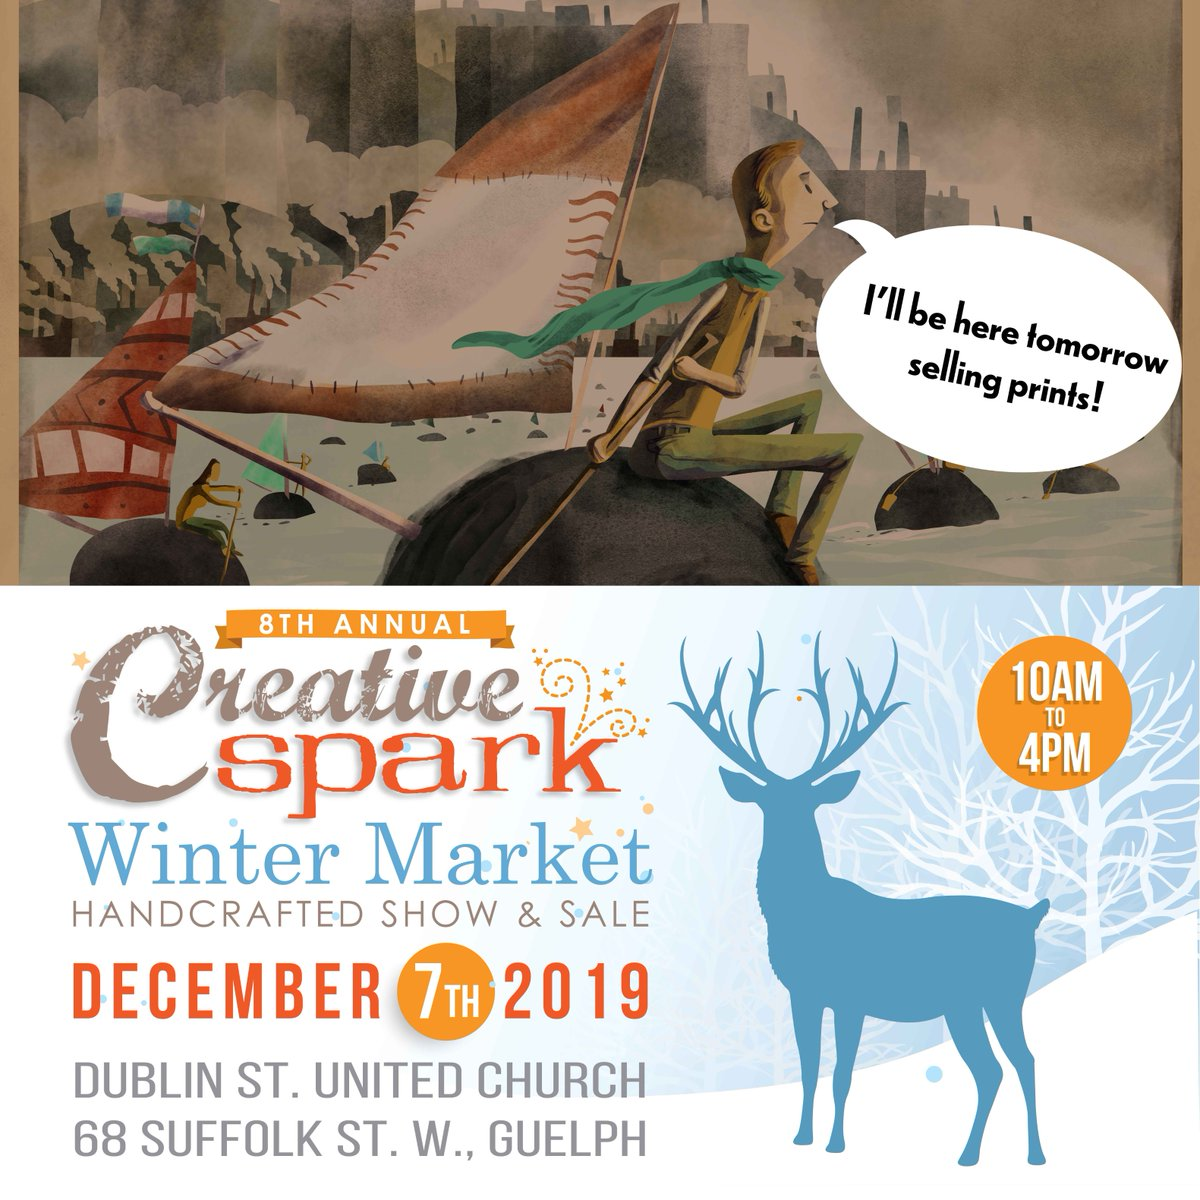 Come to Dublin St. United church tomorrow for music, baked goods, and handmade goods including my prints, book, and painting! @guelpharts @DowntownGuelph @GuelphToday @cityofguelph #art #localart #painting #buylocal #christmas2019